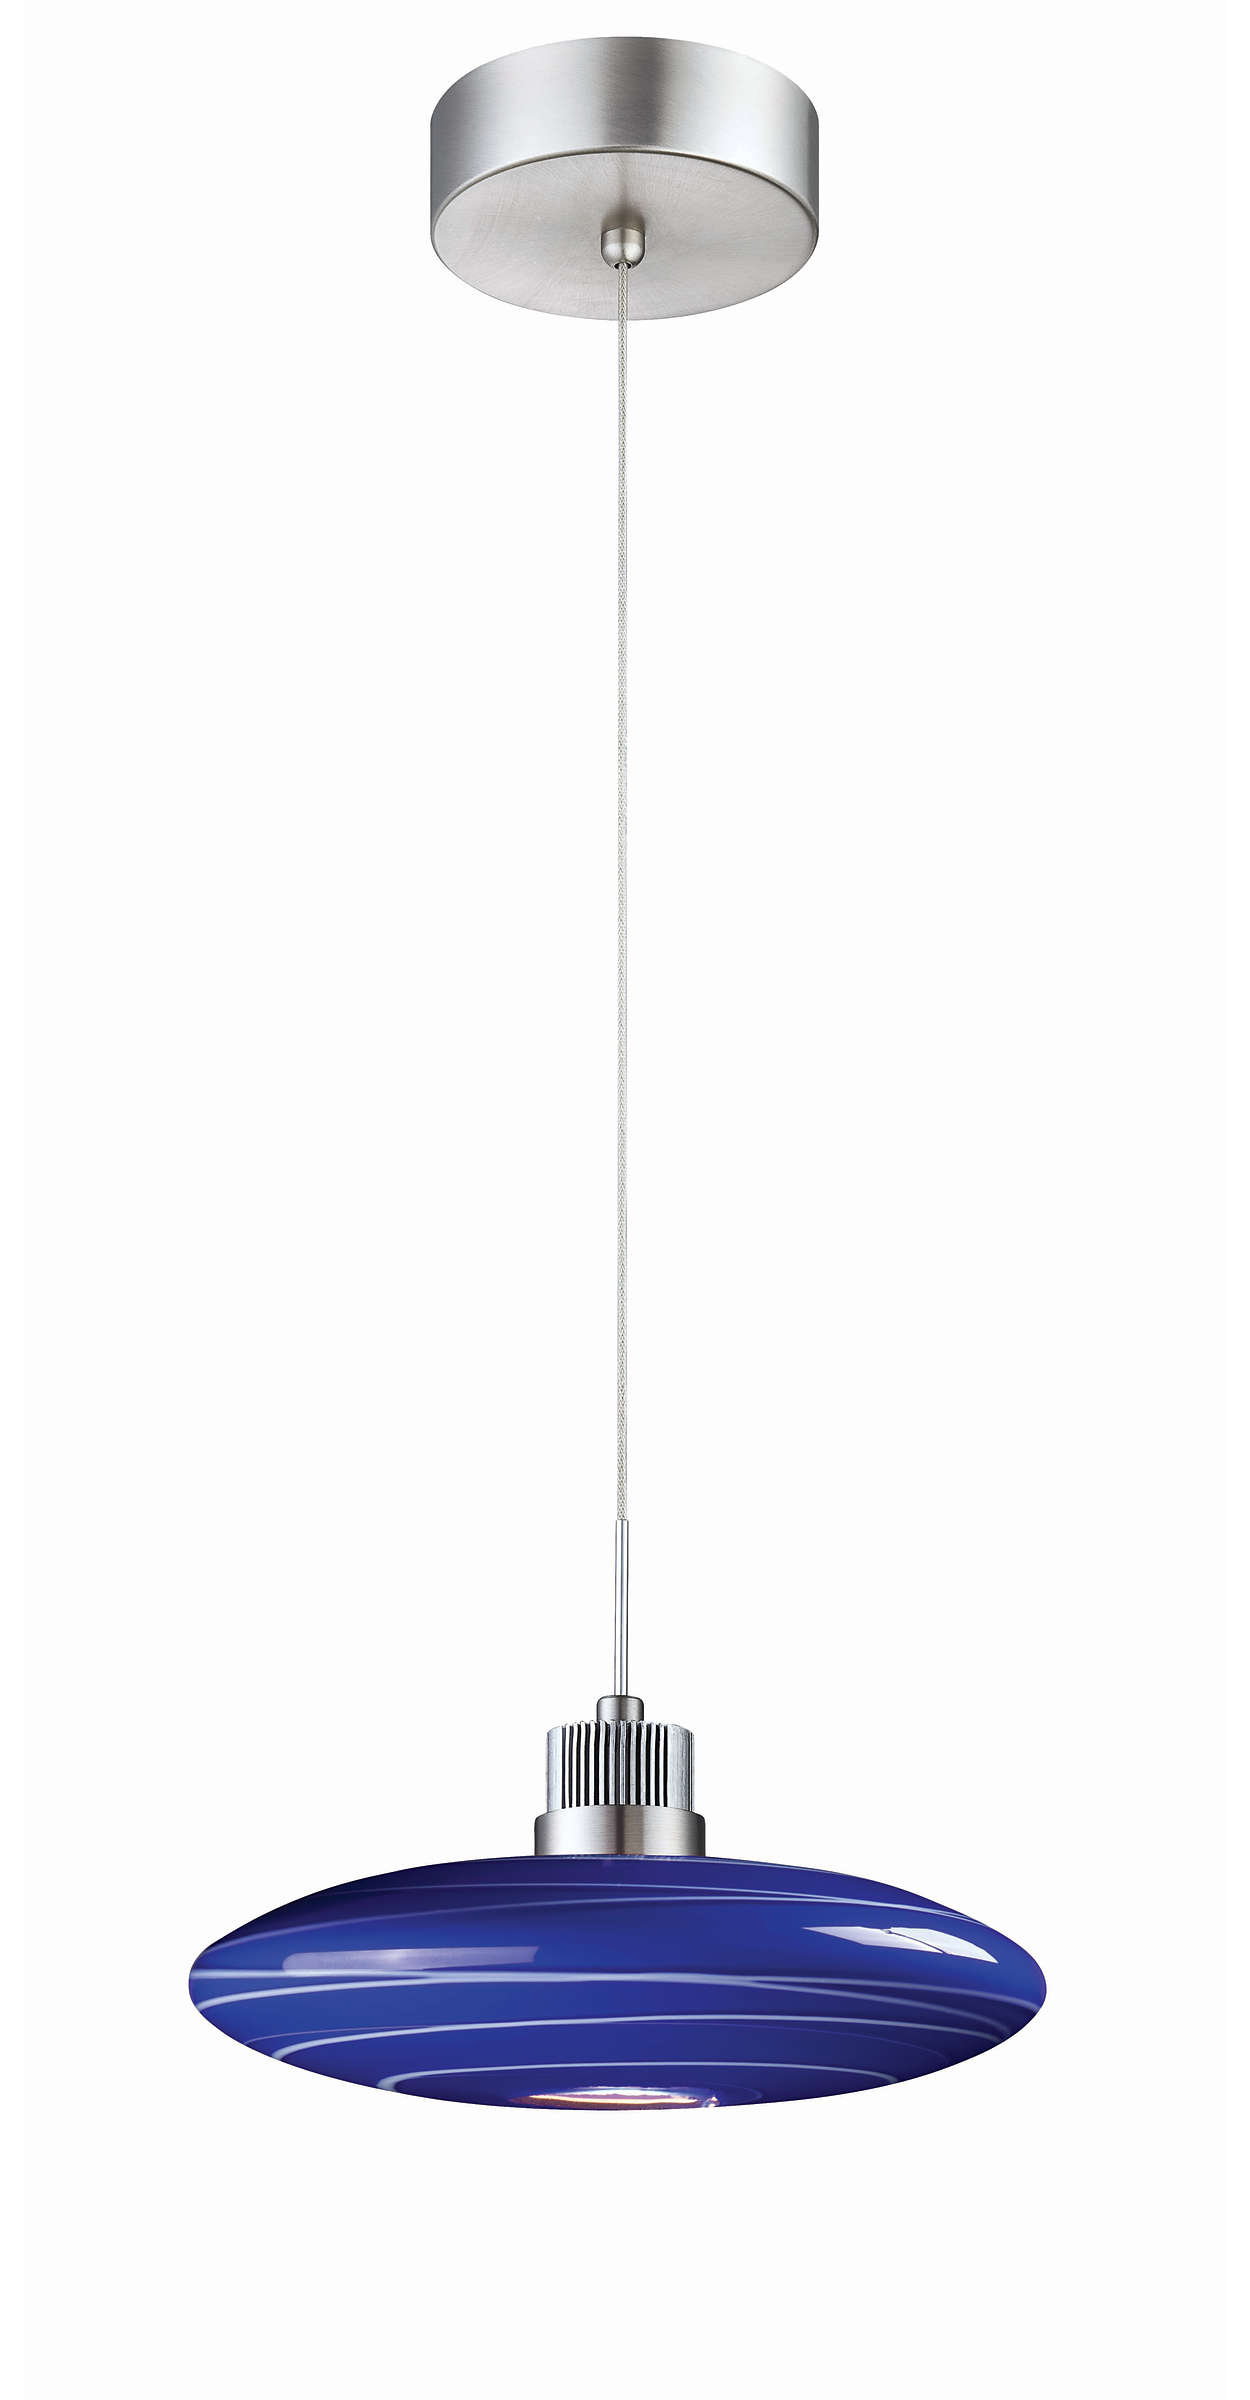 Wisp 1-light LED pendant in Satin Nickel finish